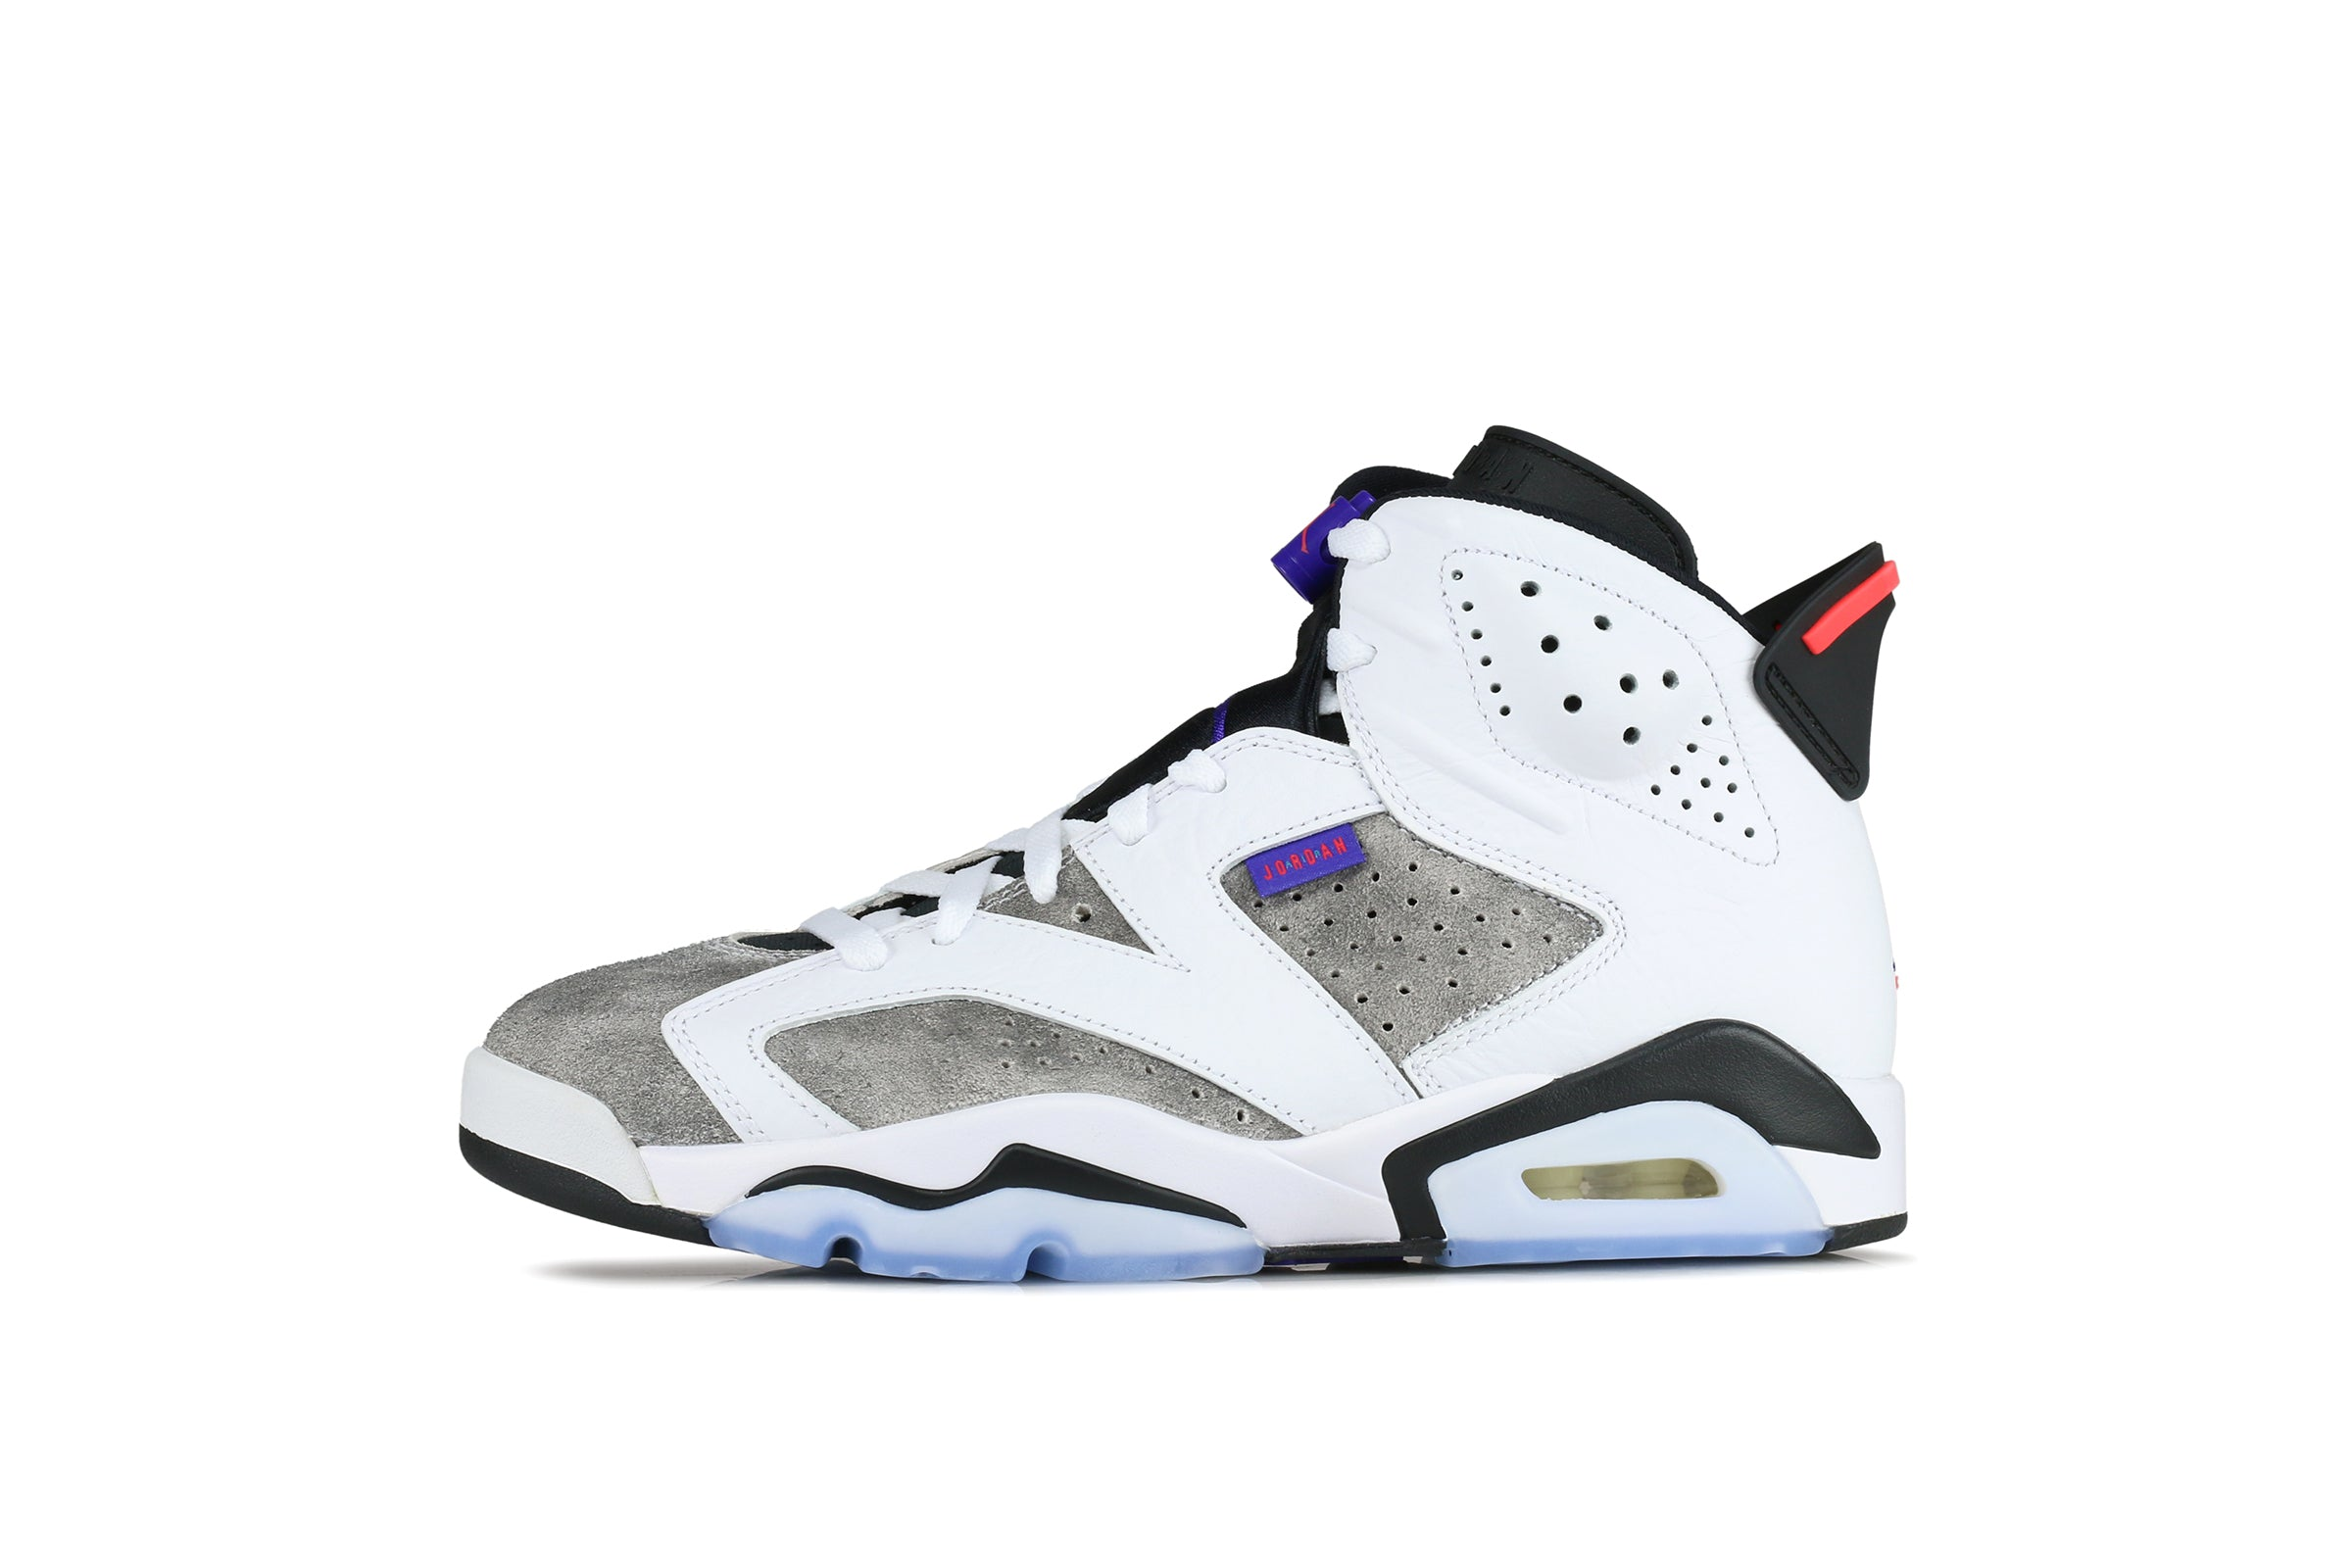 finest selection 2d2e3 ae6b3 Nike Air Jordan 6 Retro Ltr